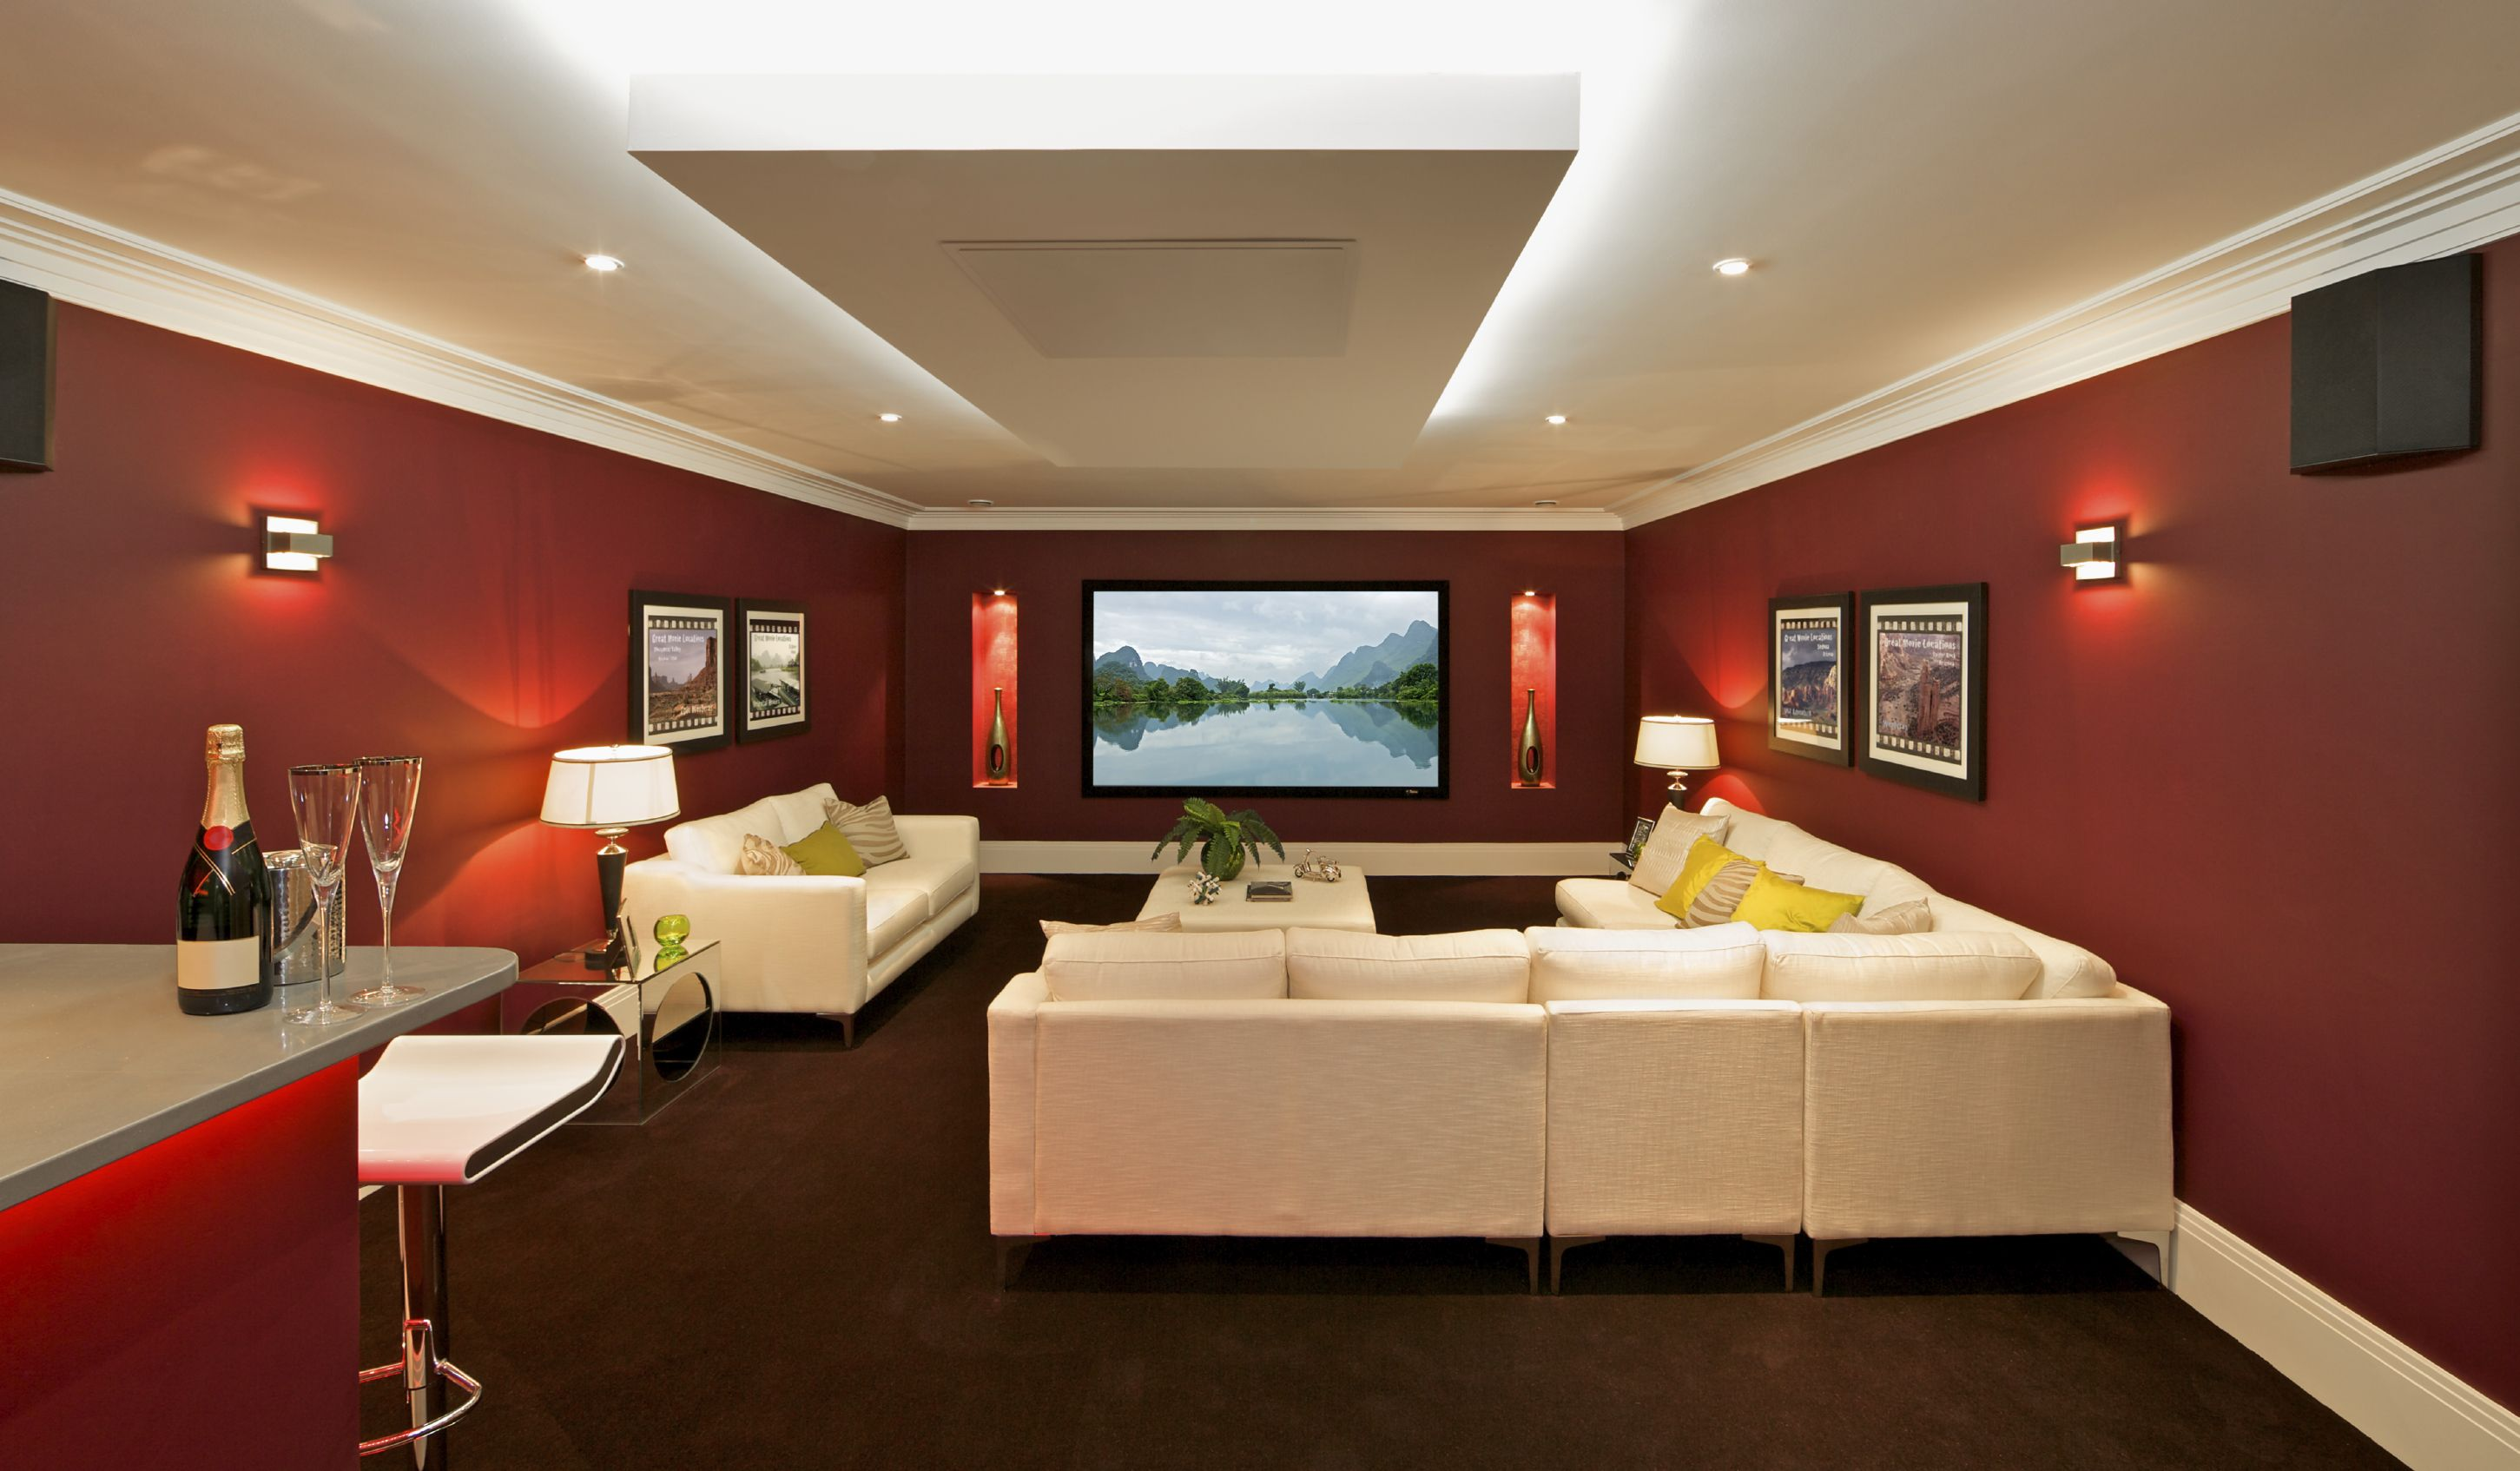 theatre room ideas pictures | AV Architects and Build Entertainment on red bedroom design ideas, home theater entrance ideas, home theater layout ideas, red interior design ideas, home theater wiring ideas, red garage design ideas, red room design ideas, red bathroom design ideas, red fireplace design ideas, red office design ideas, home movie theater ideas,